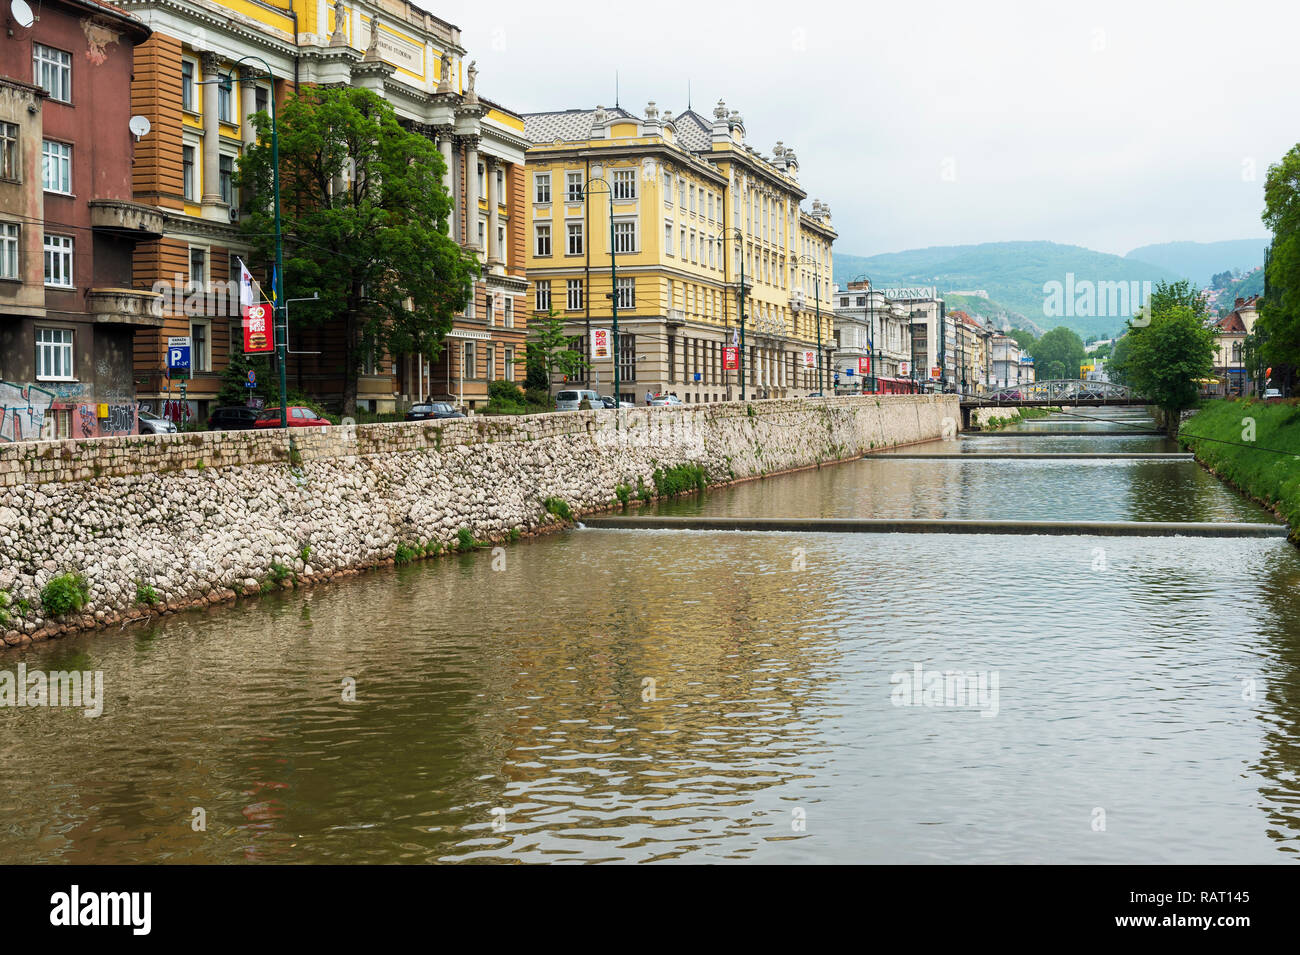 Sarajevo University and Miljacka river, Bosnia and Herzegovina - Stock Image